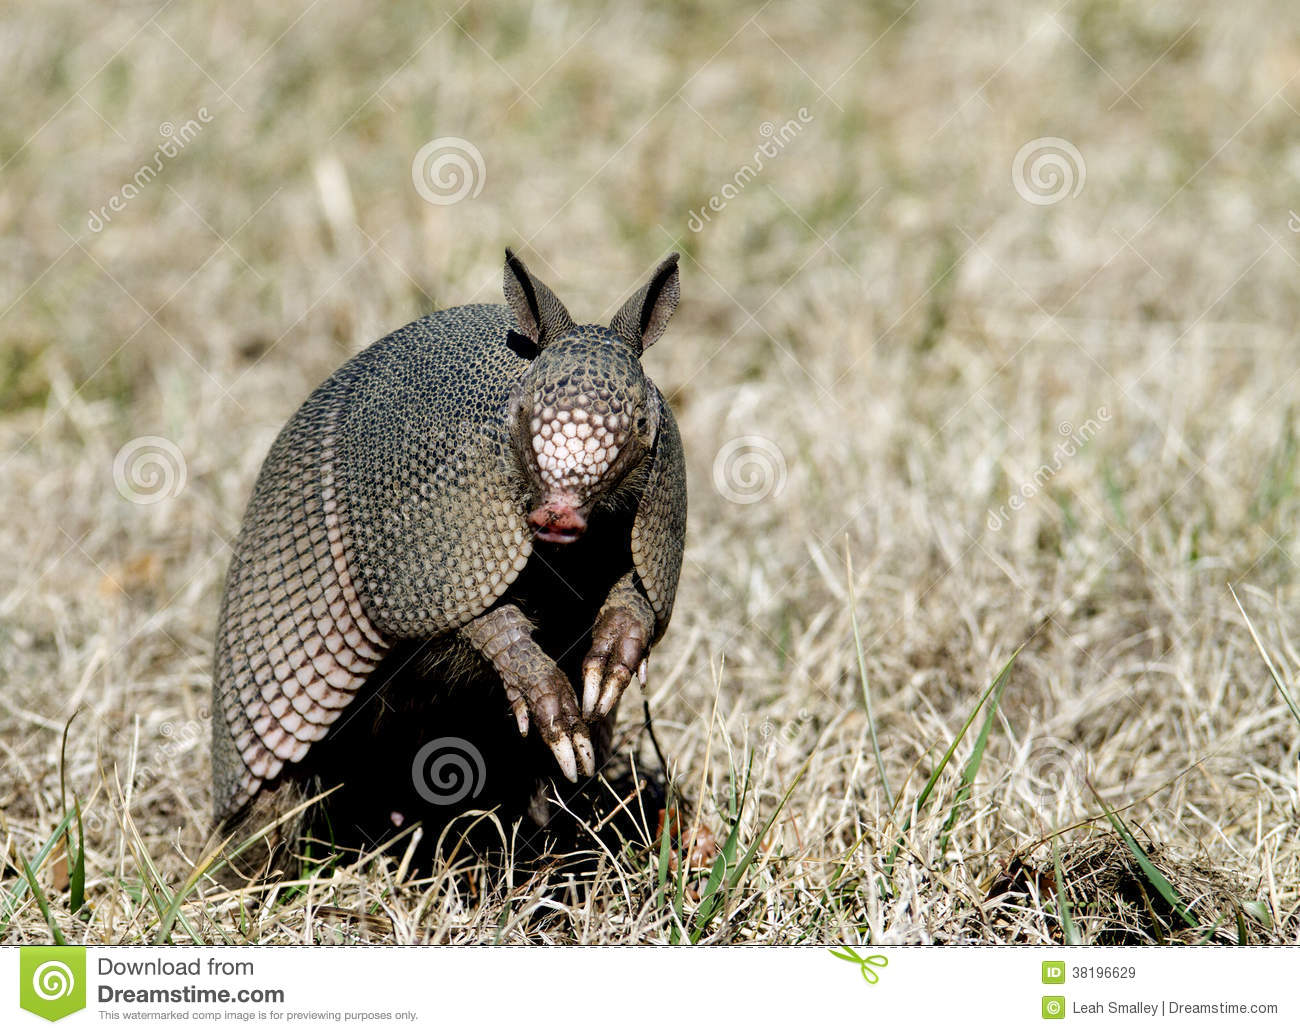 armadillo sits up in the grass stock image - image of novemcinctus